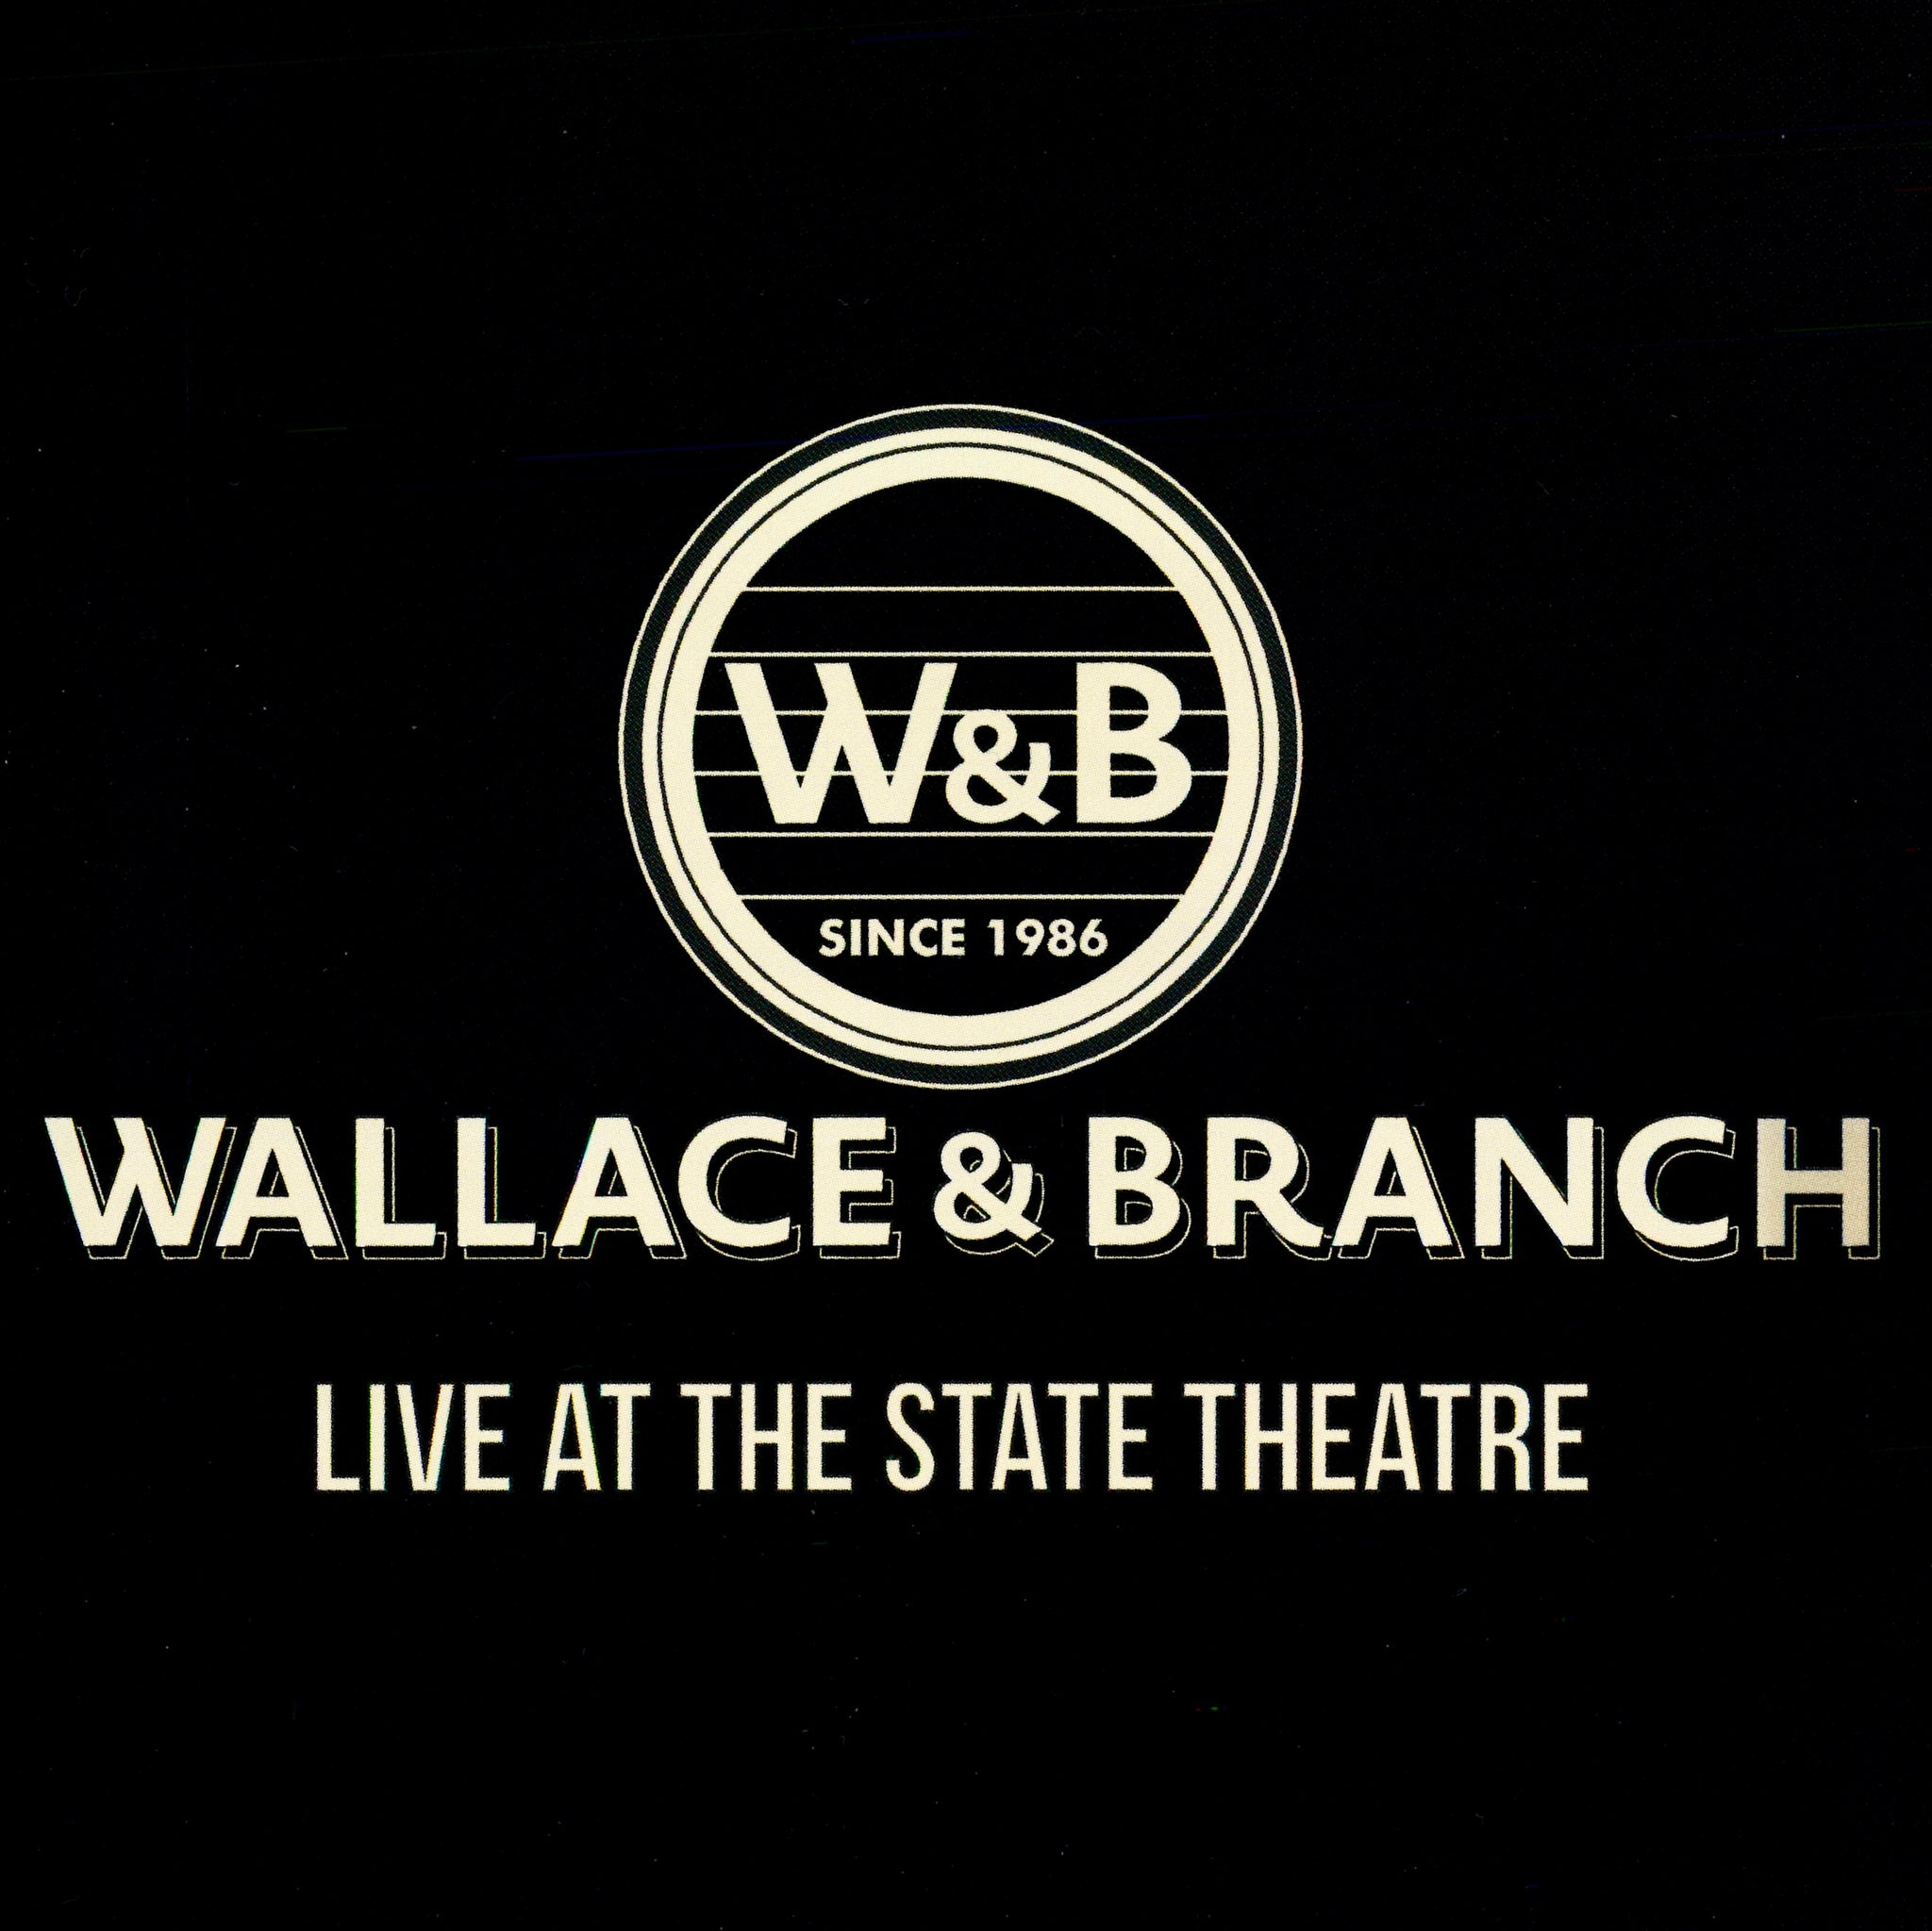 Wallace & Branch - Live at the State Theatre